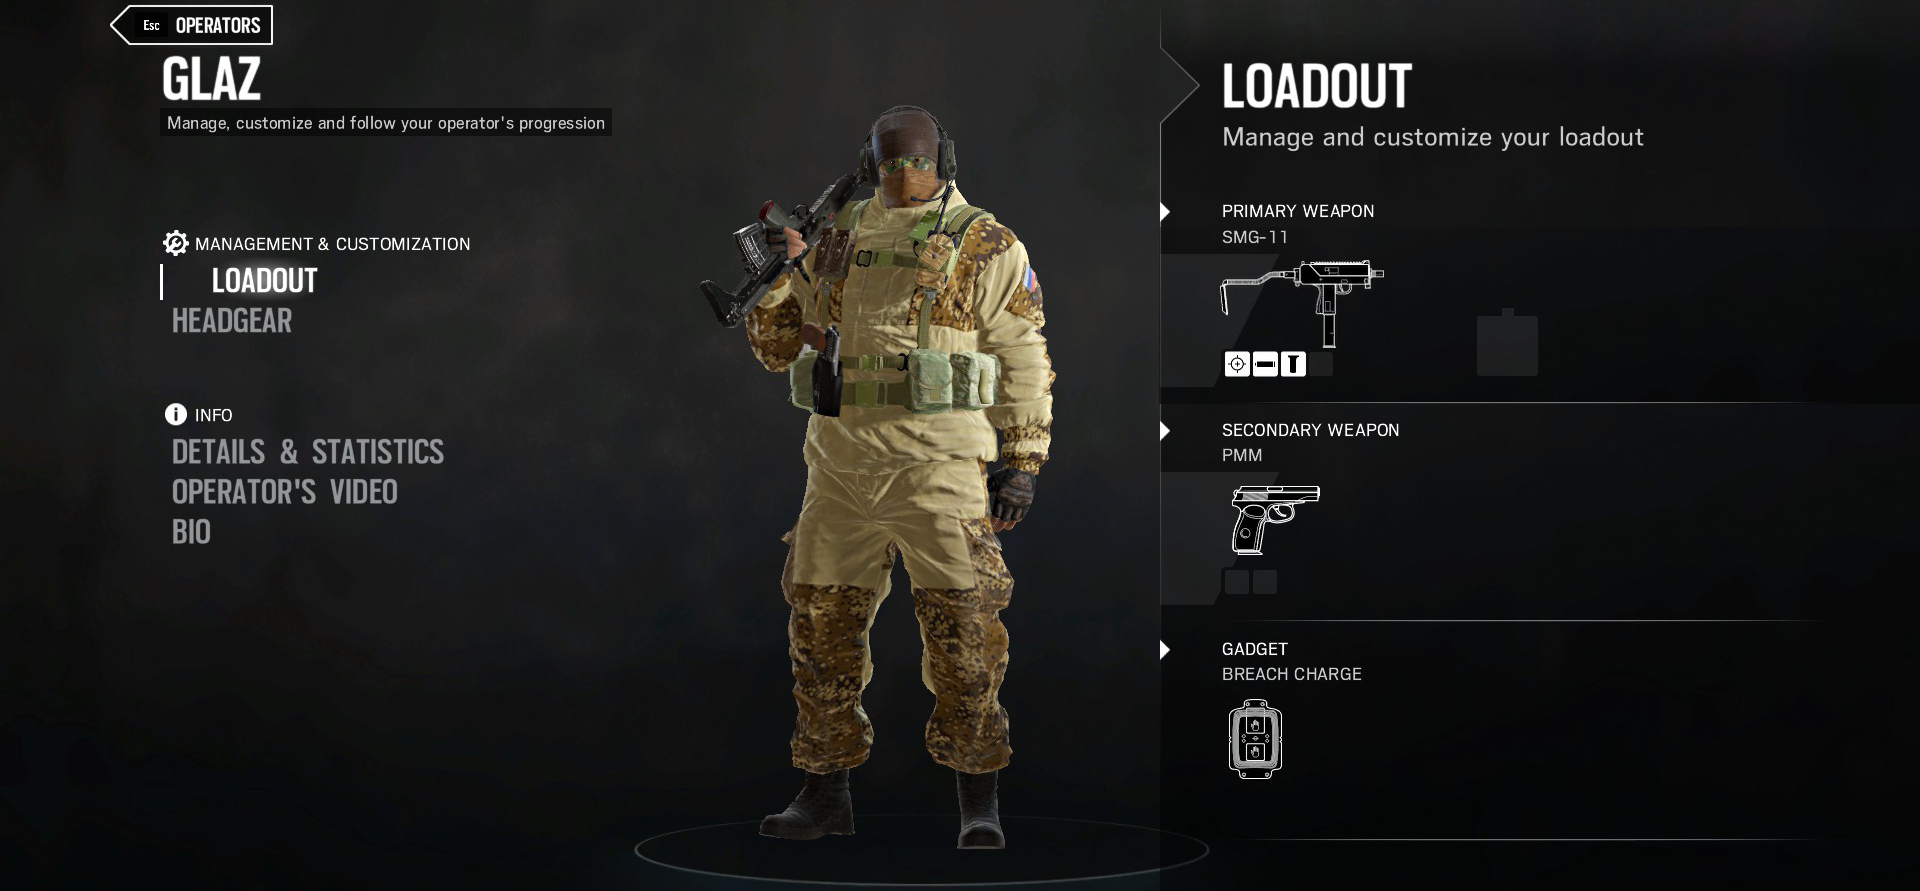 Glaz to Get Upgrade in Rainbow Six Siege